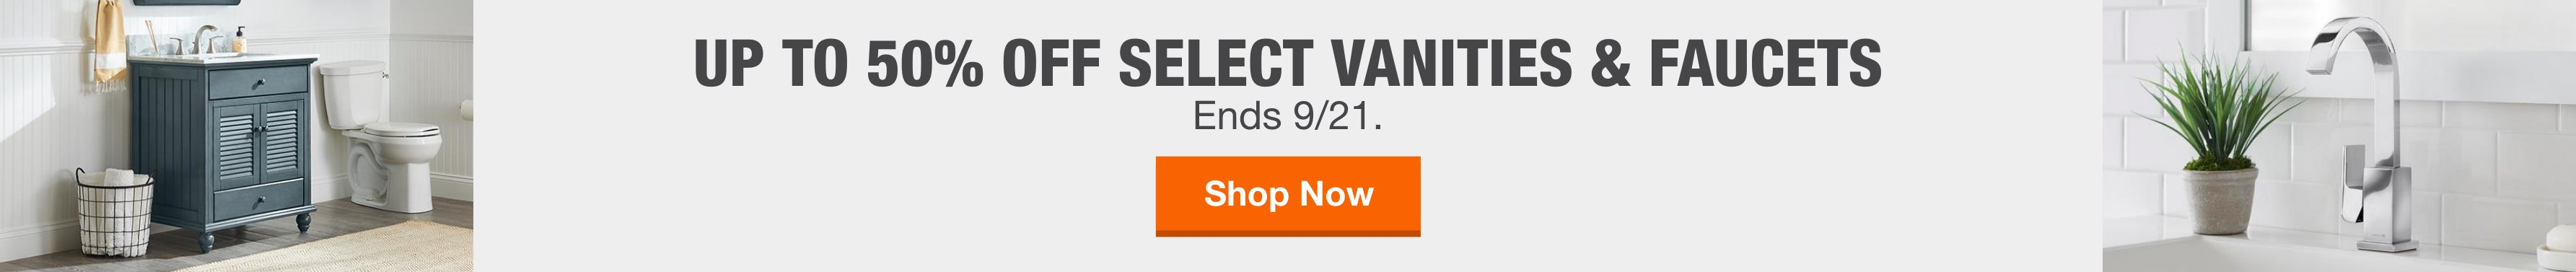 Up to 50% off Select Vanities & Faucets. Ends October 21.